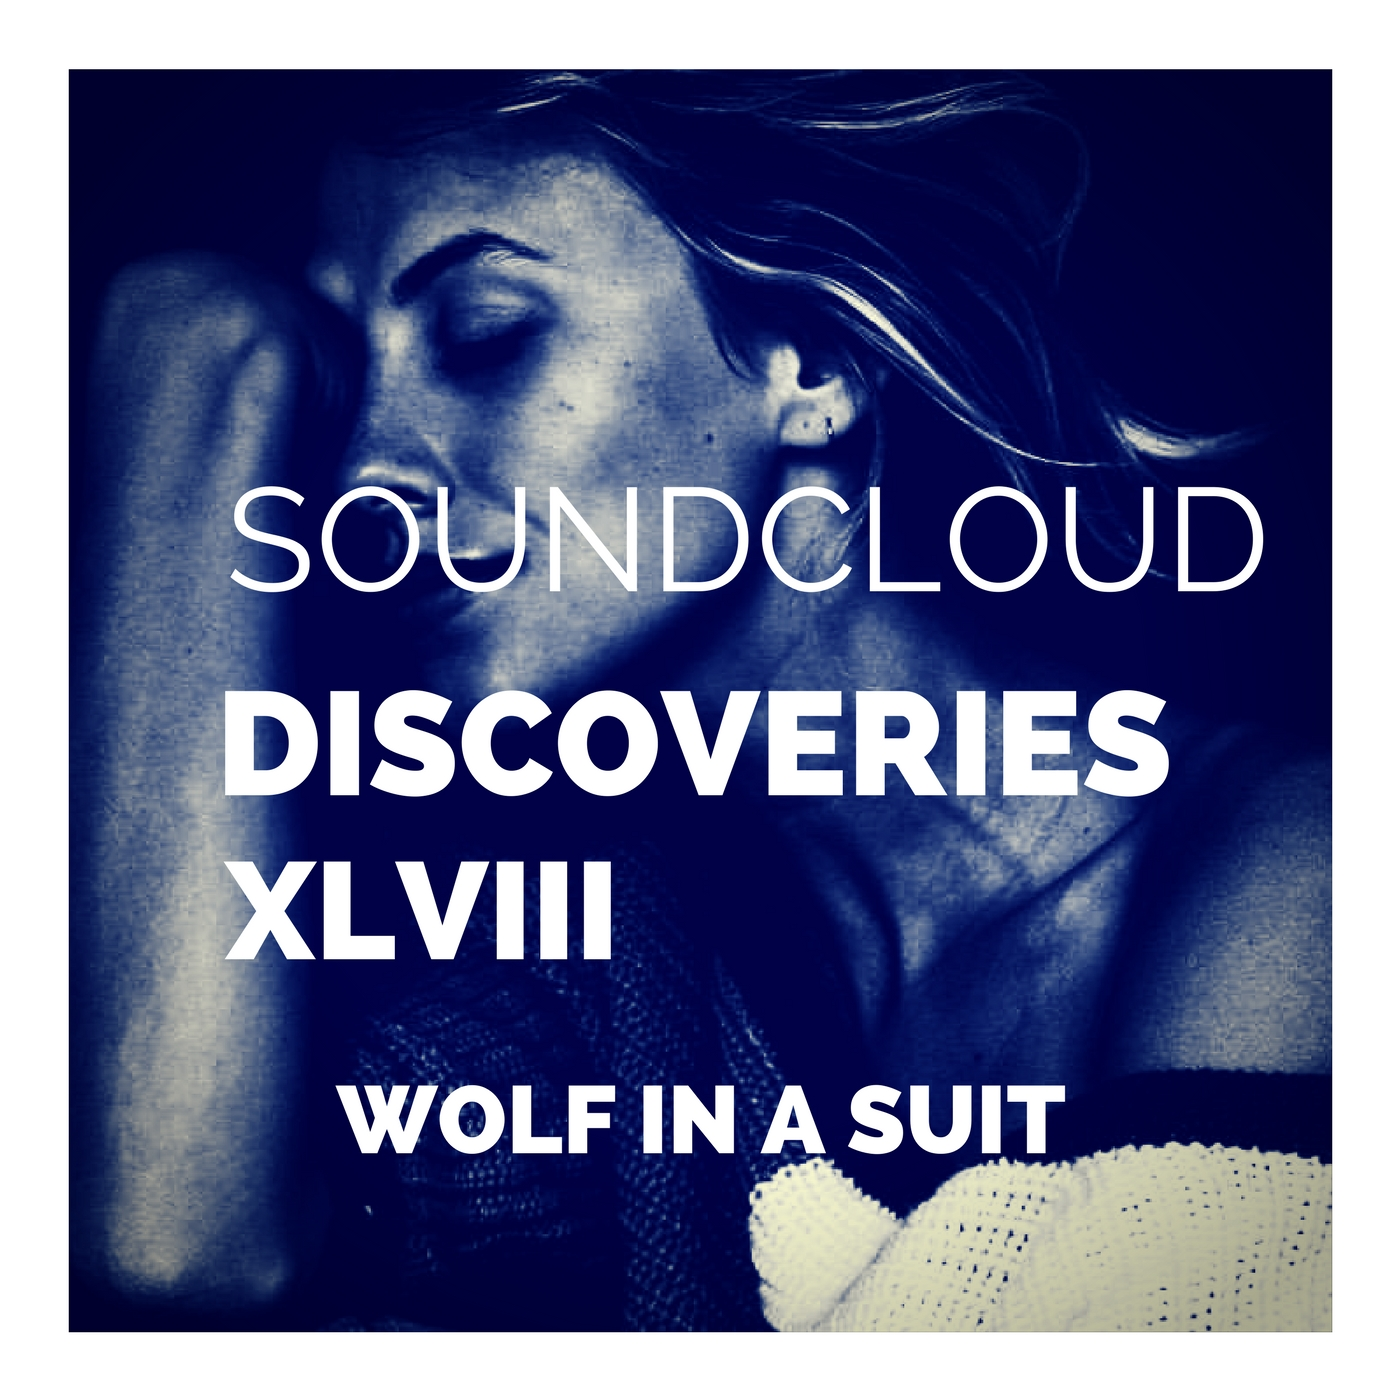 playlist-soundcloud discoveries part xlviii-indie-indie music-new music-indie pop-indie rock-indie folk-music blog-indie blog-wolf in a suit-wolfinasuit